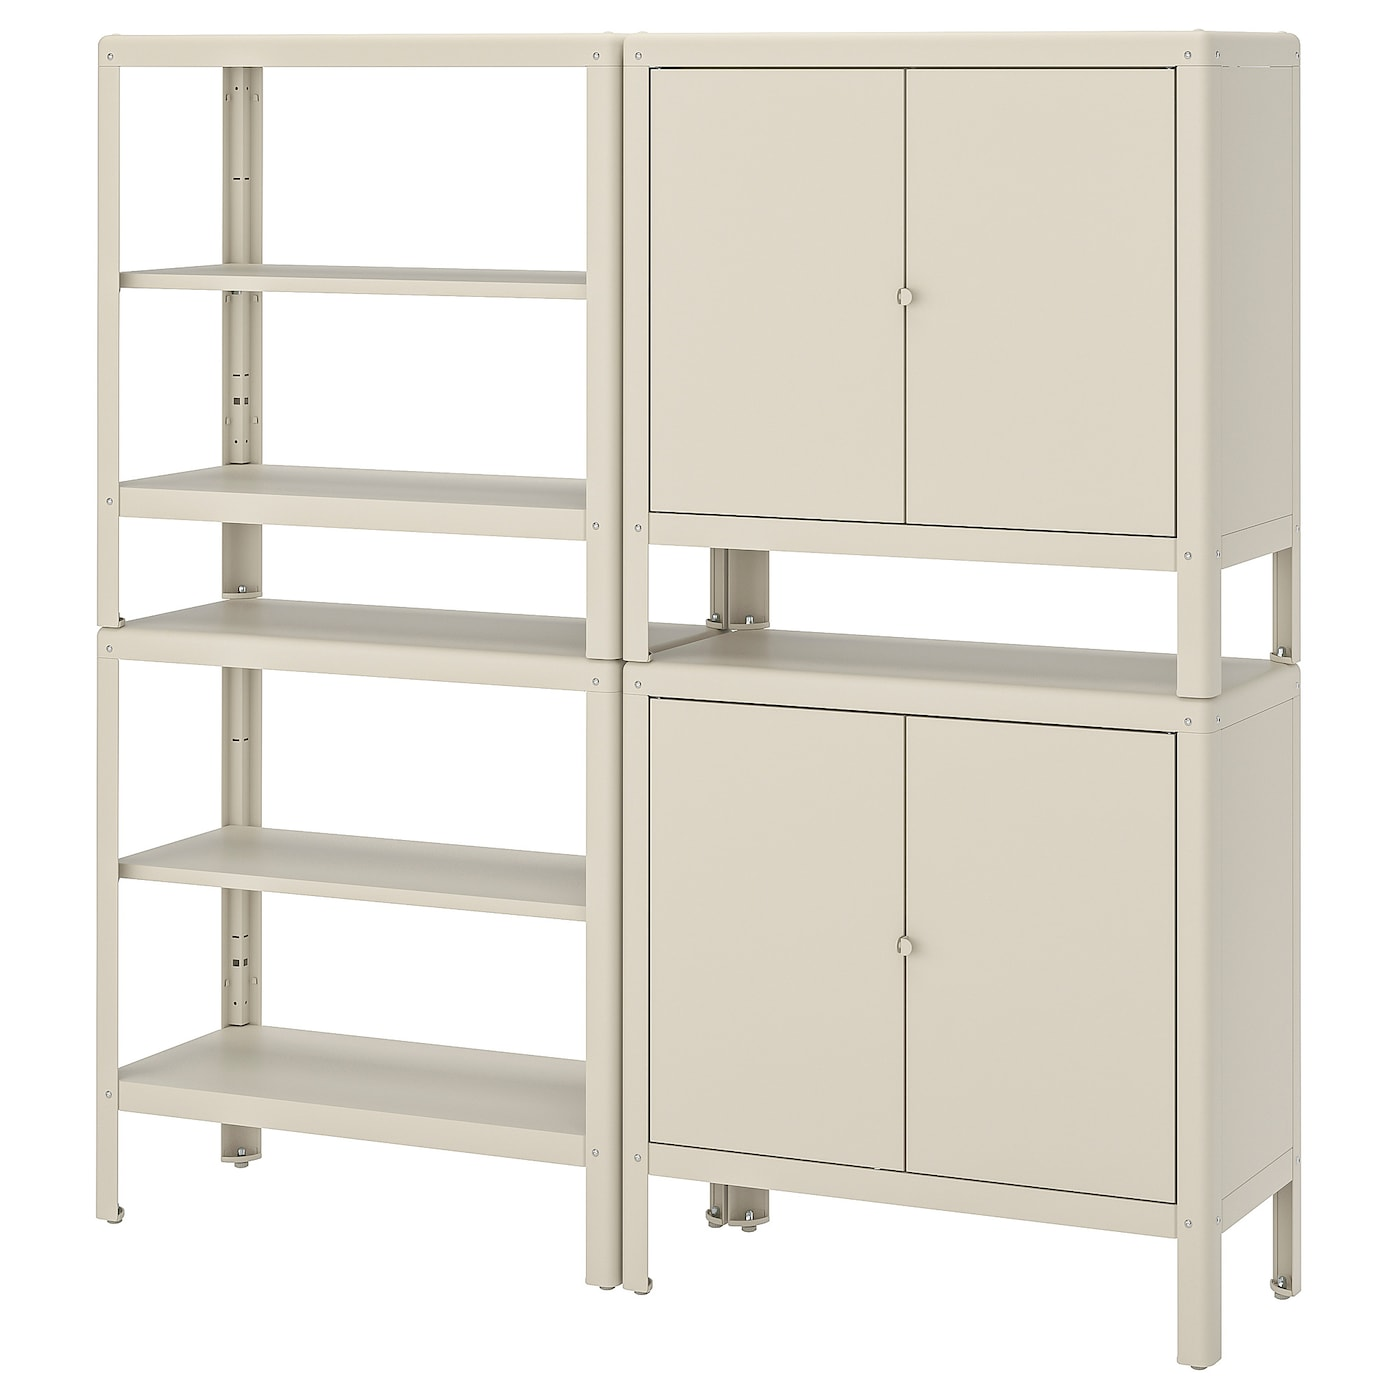 IKEA KOLBJÖRN shelving unit with 2 cabinets Suitable for both indoor and outdoor use.